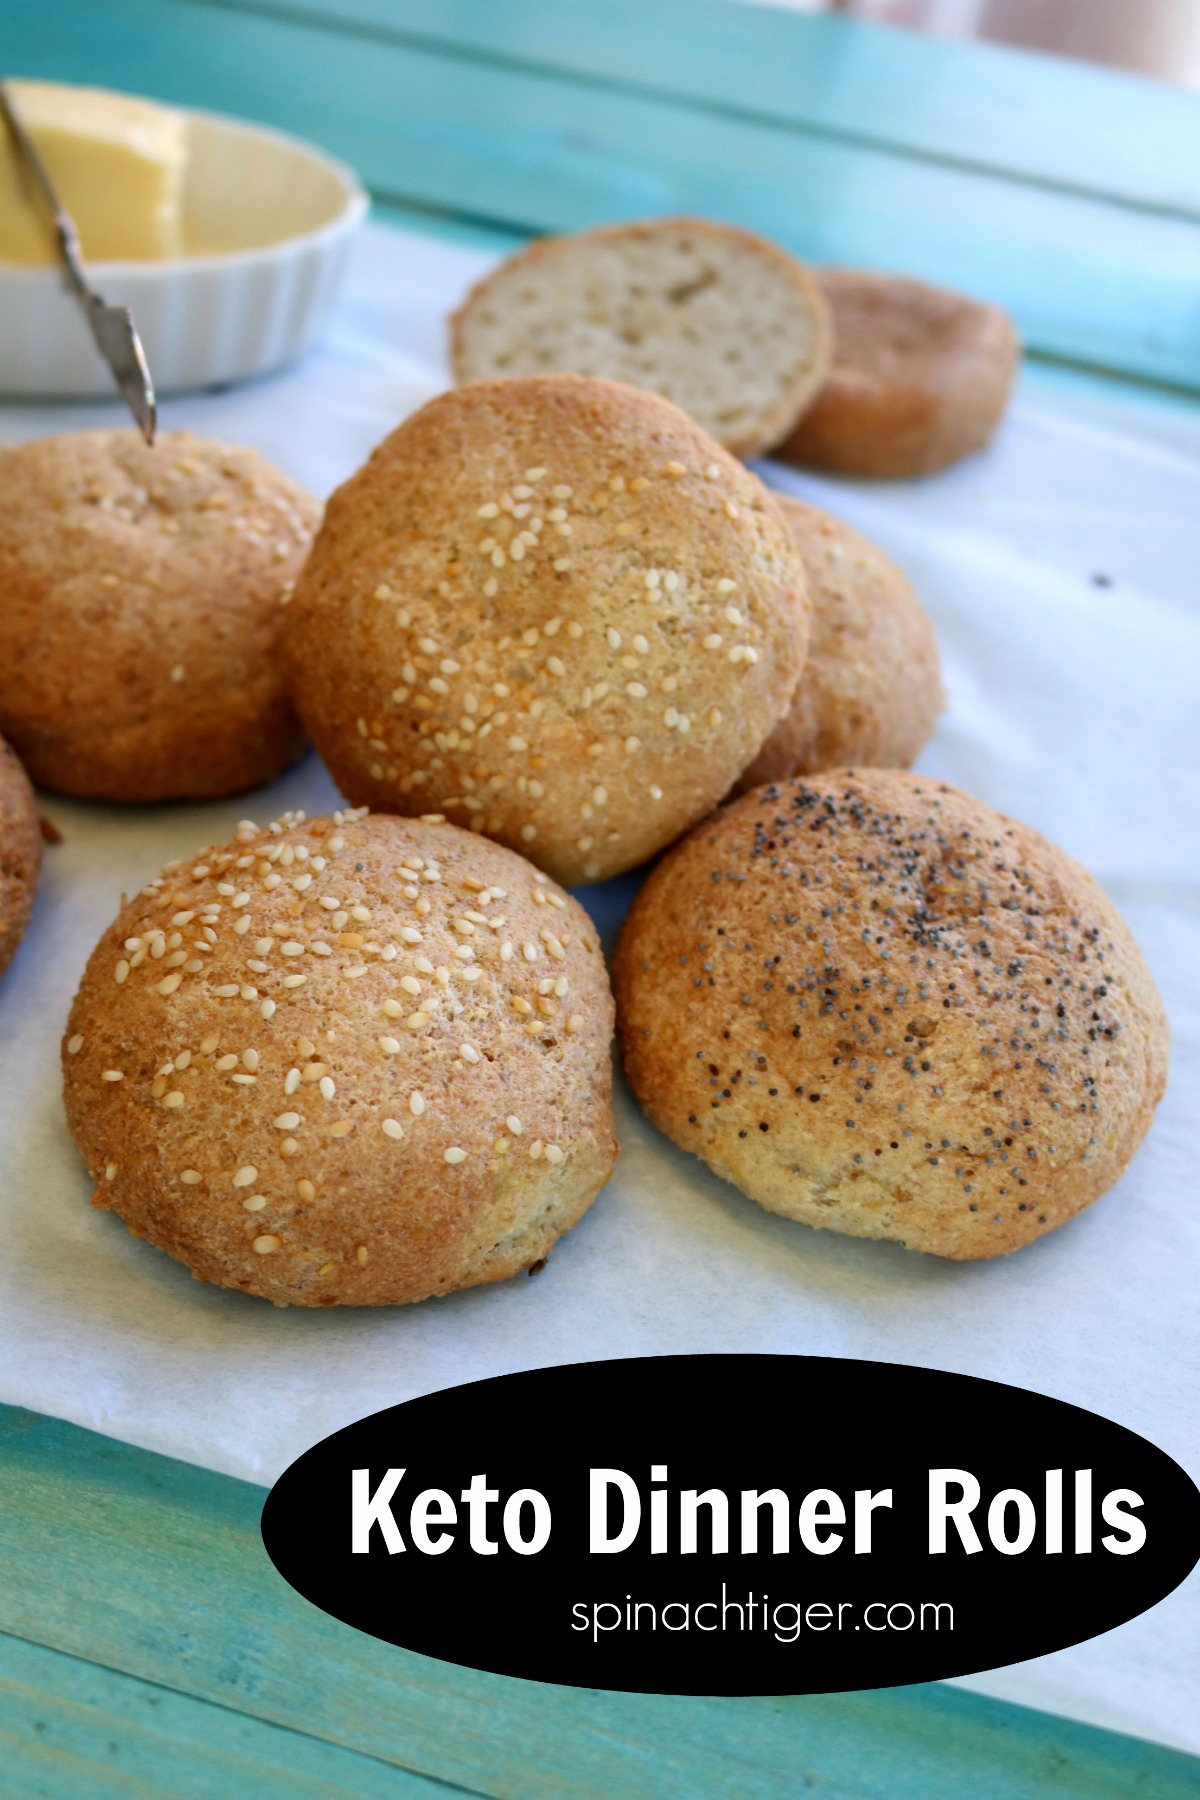 Keto dinner rolls soft and pliable making these the best rolls anywhere. Taught in my keto baking classes #ketodinnerrolls #ketobread #grainfreedinnerrolls #spinachtiger via @angelaroberts